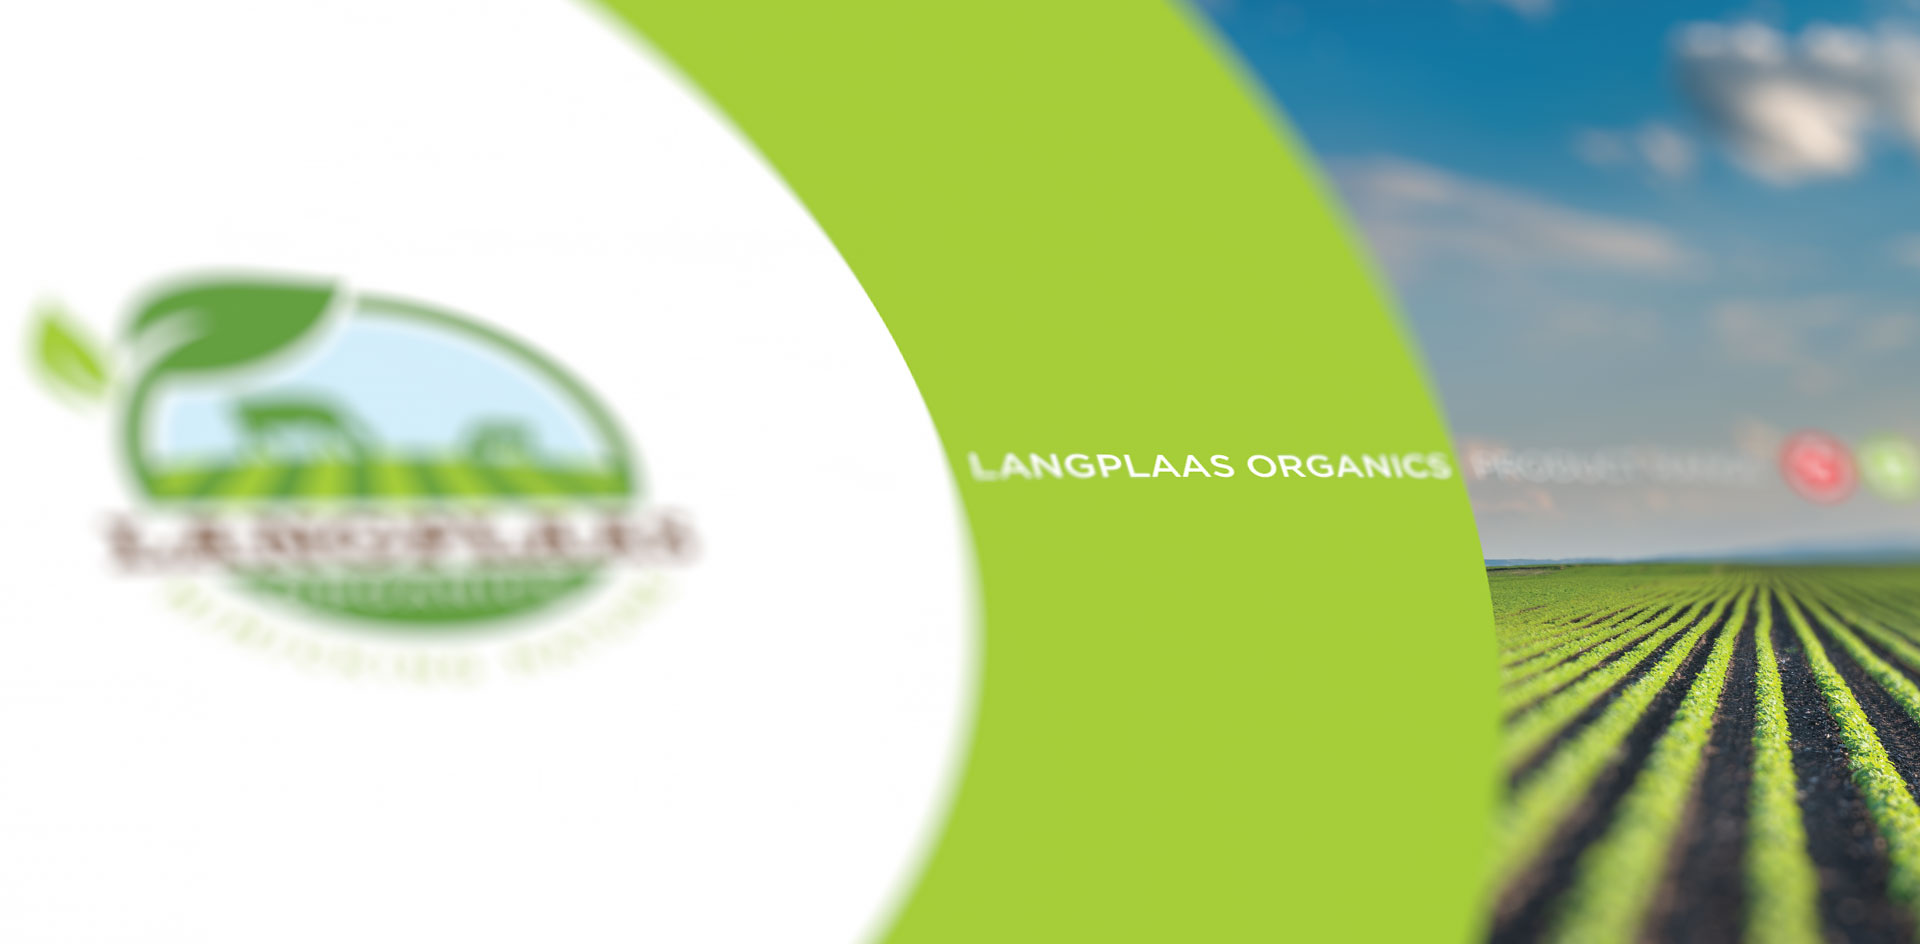 Langplaas organics graphic design by Black Rooster Studios